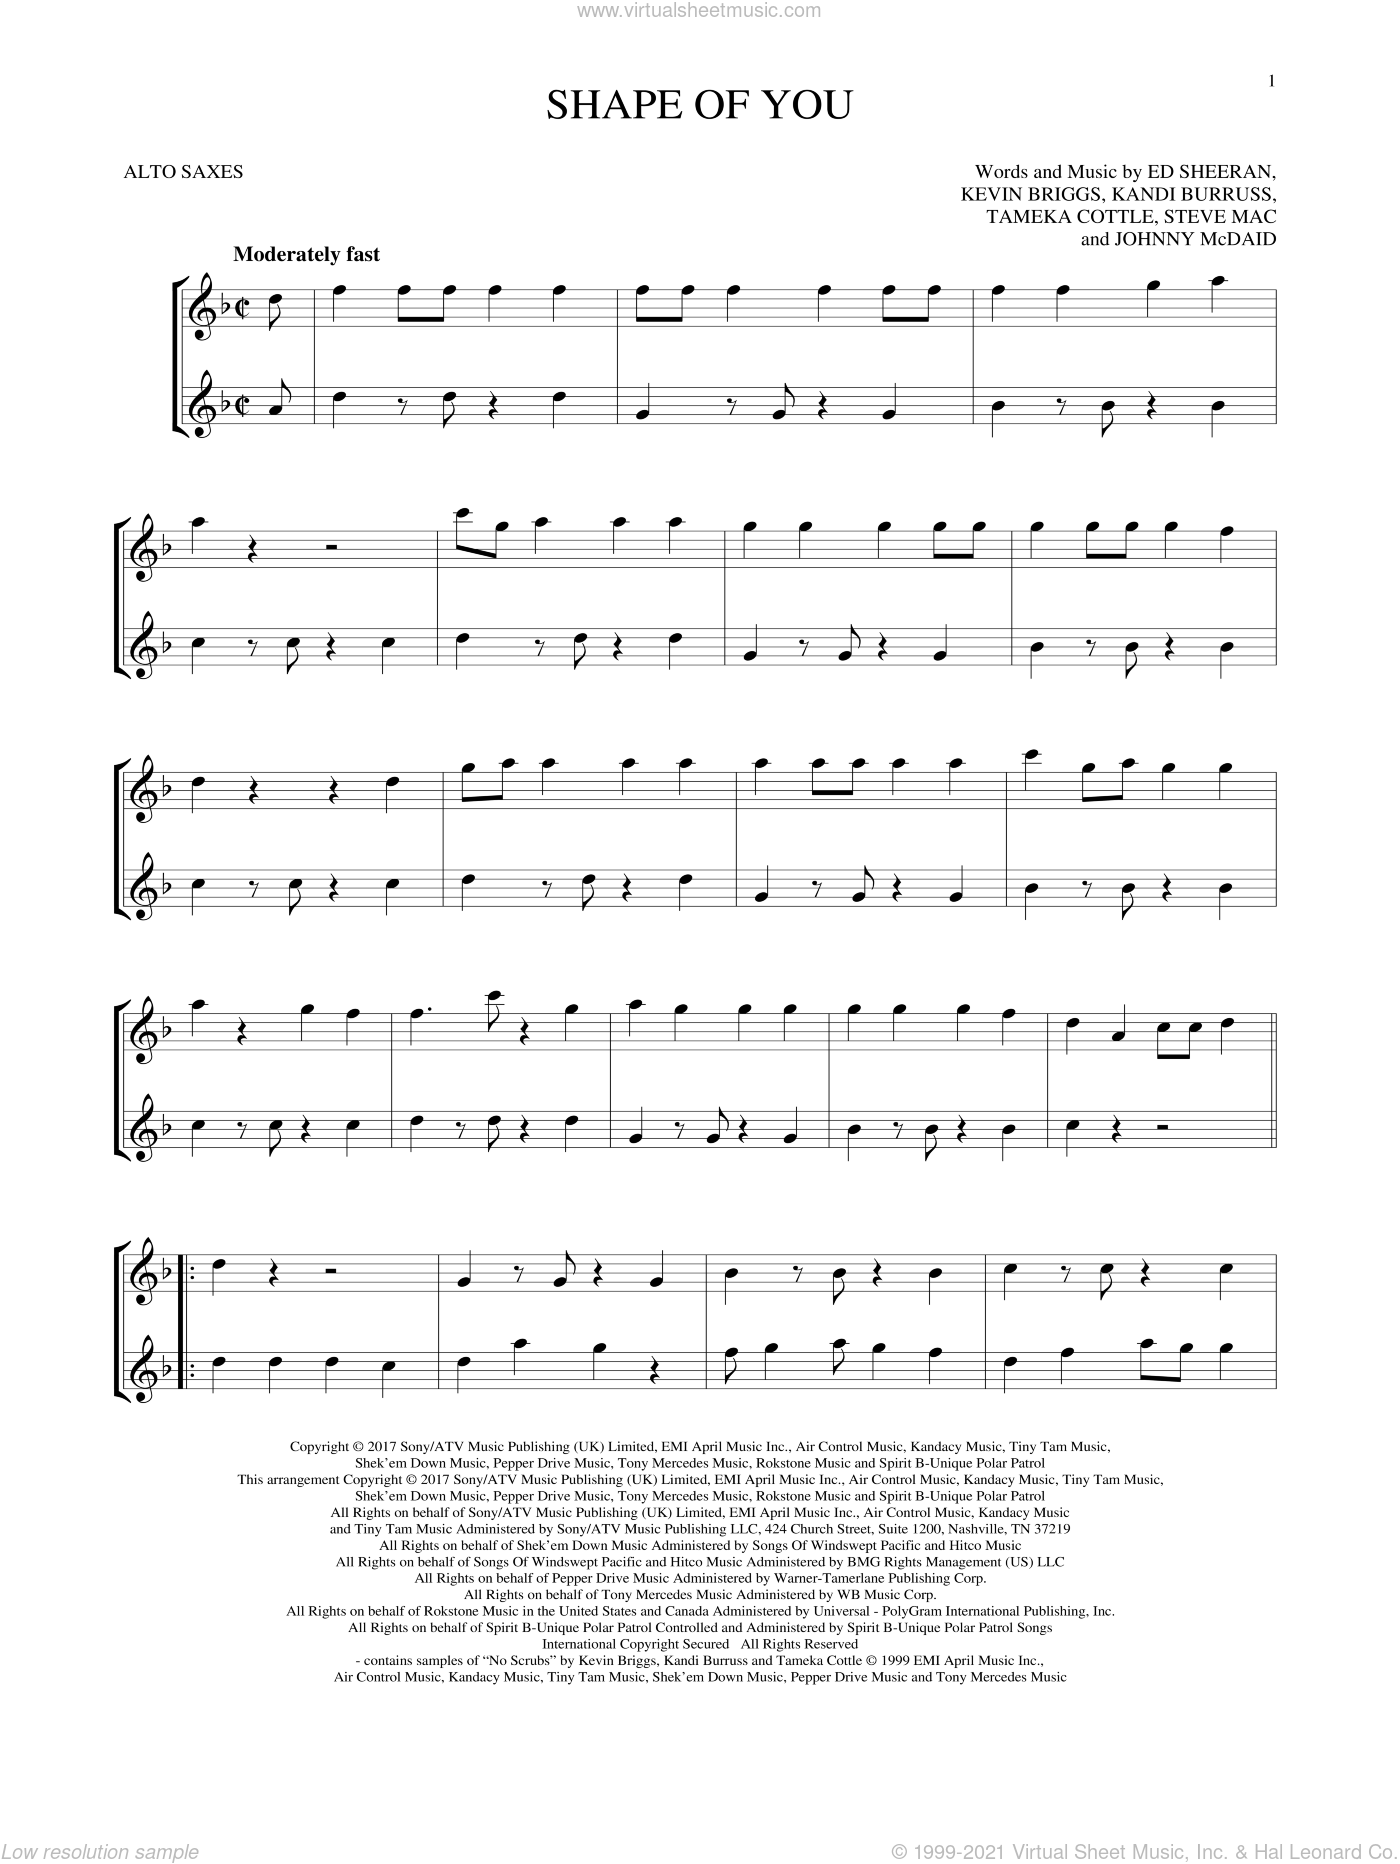 Shape Of You sheet music for two alto saxophones (duets) by Ed Sheeran, Johnny McDaid, Kandi Burruss, Kevin Briggs, Steve Mac and Tameka Cottle, intermediate skill level